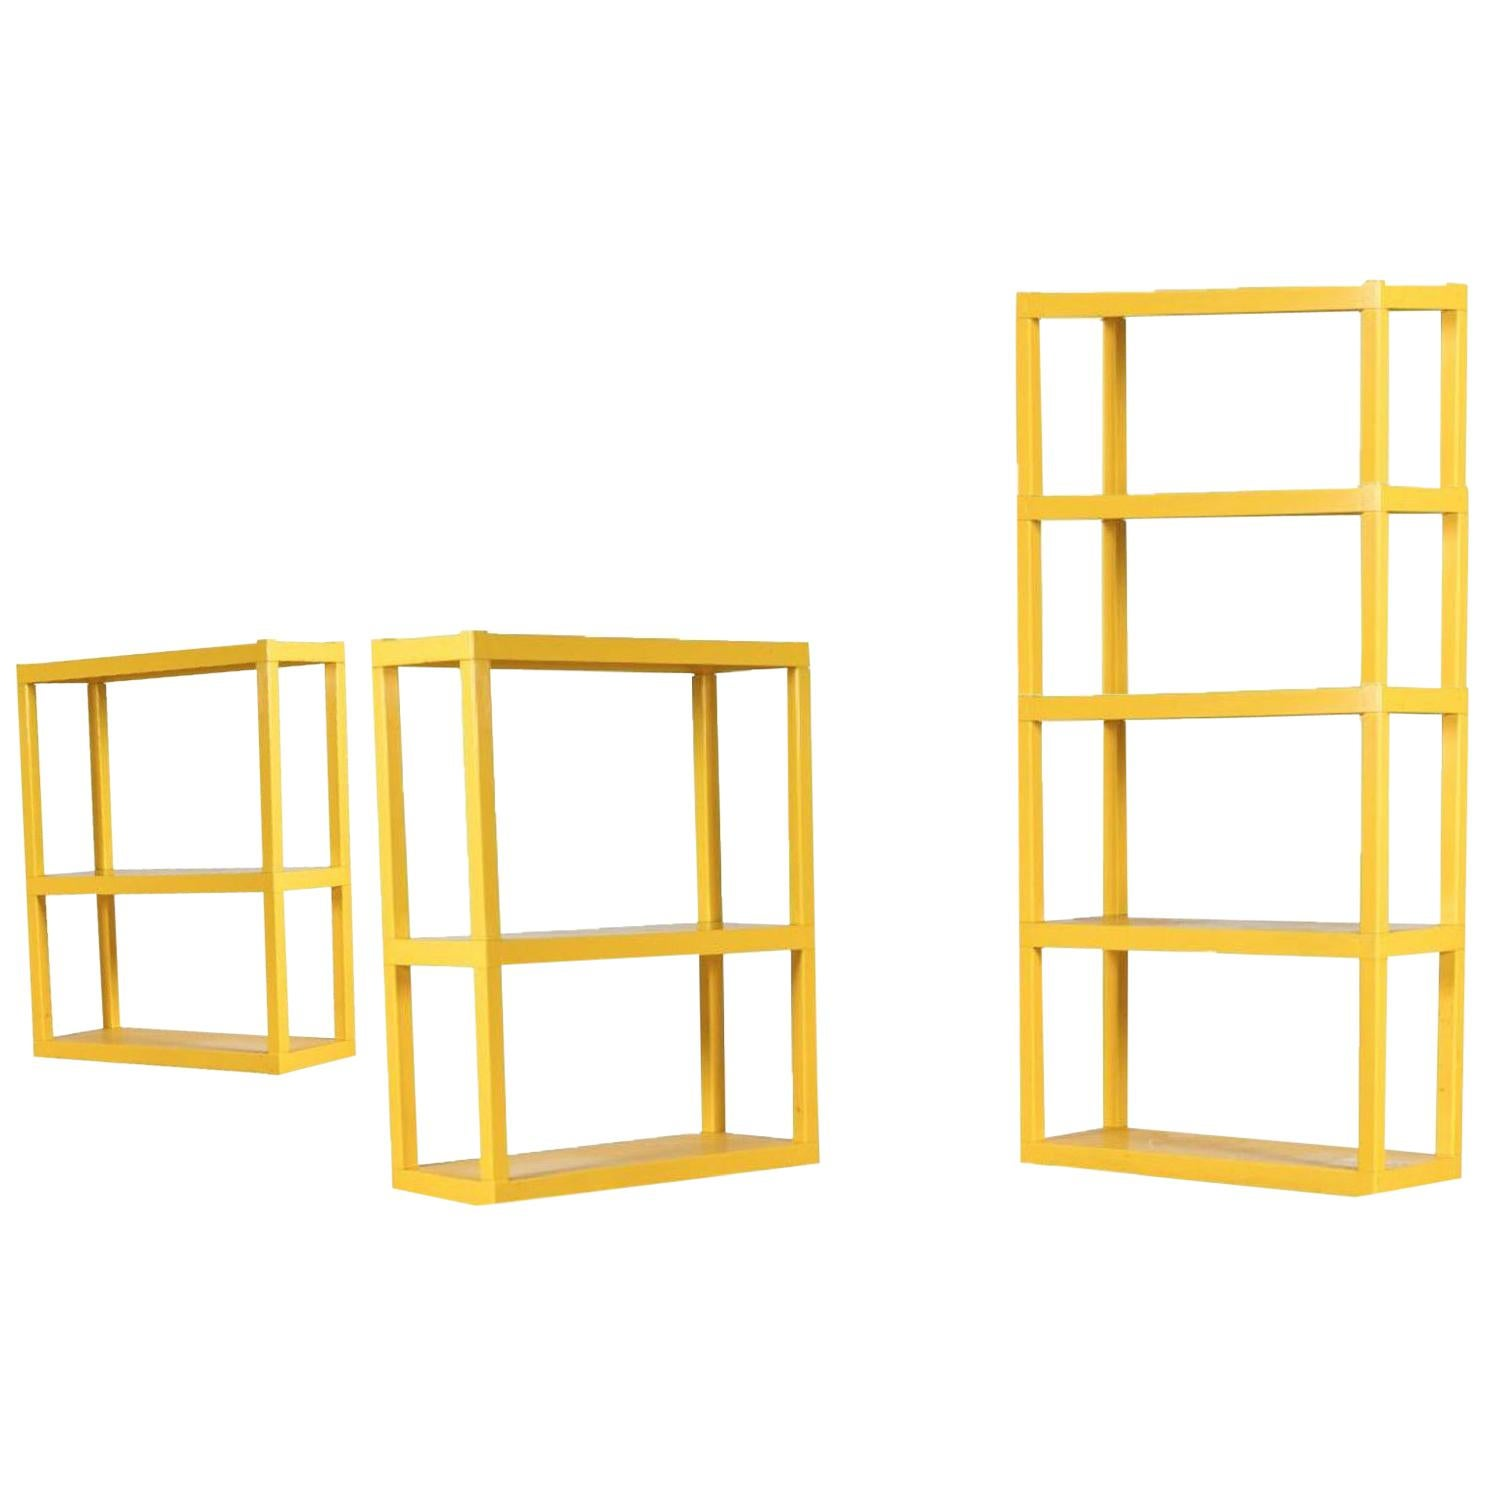 Etagere Otto Vintage Yellow Acrylic Modular Shelving System And Etagere By Syroco New York